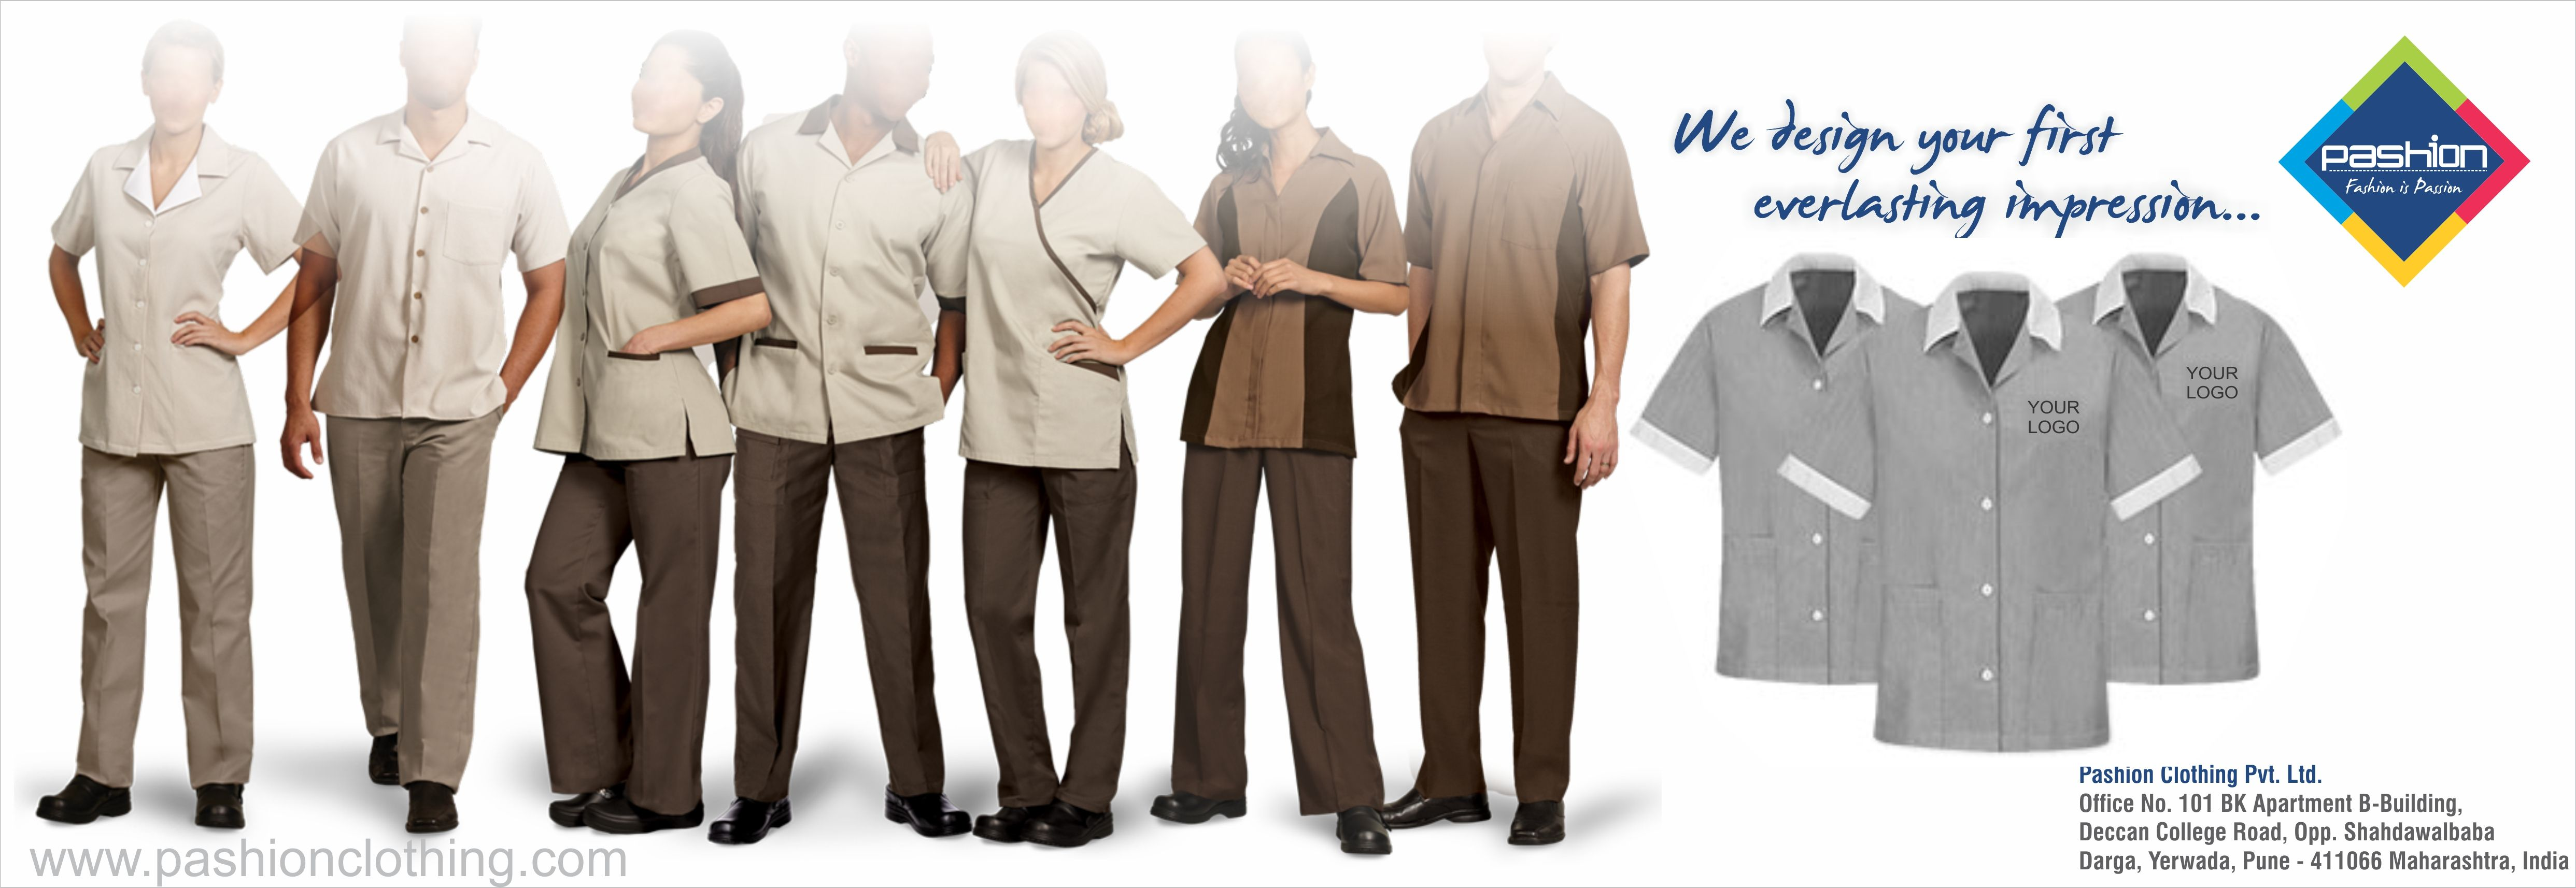 indian manufacturers directory pashion clothing pvt ltd